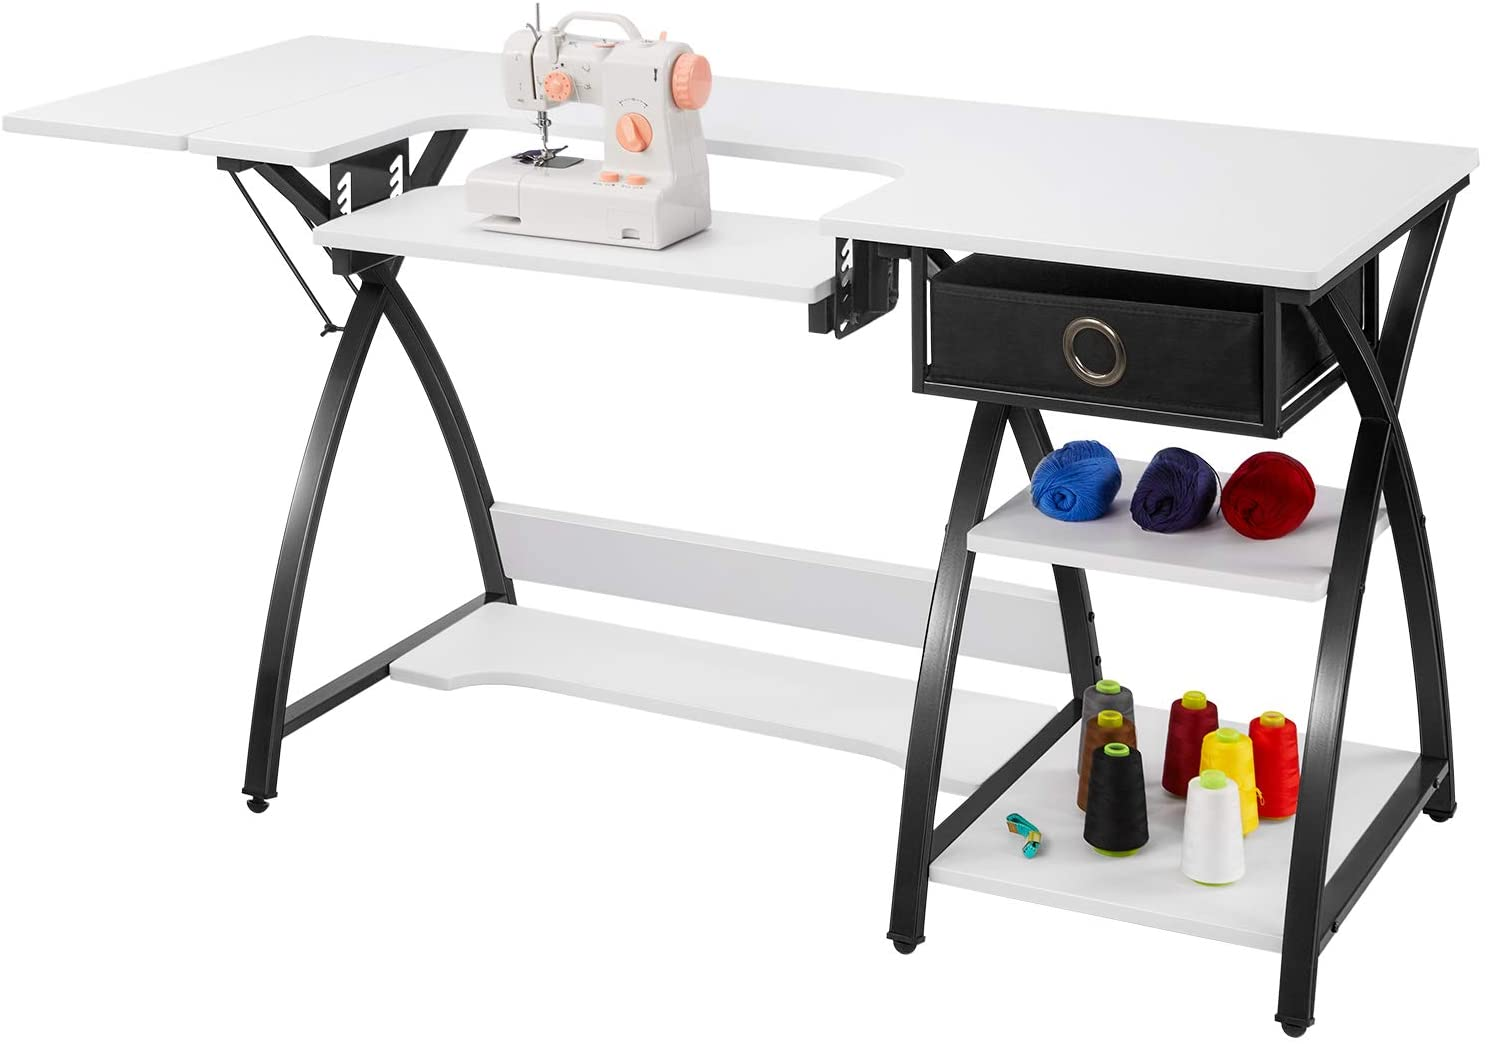 Sewing Table Adjustable Sewing Craft Table with Drawer and Shelves, X-Cross Sturdy Sewing Desk Multipurpose Computer Desk, 57.1×23.6×29.9 inches White